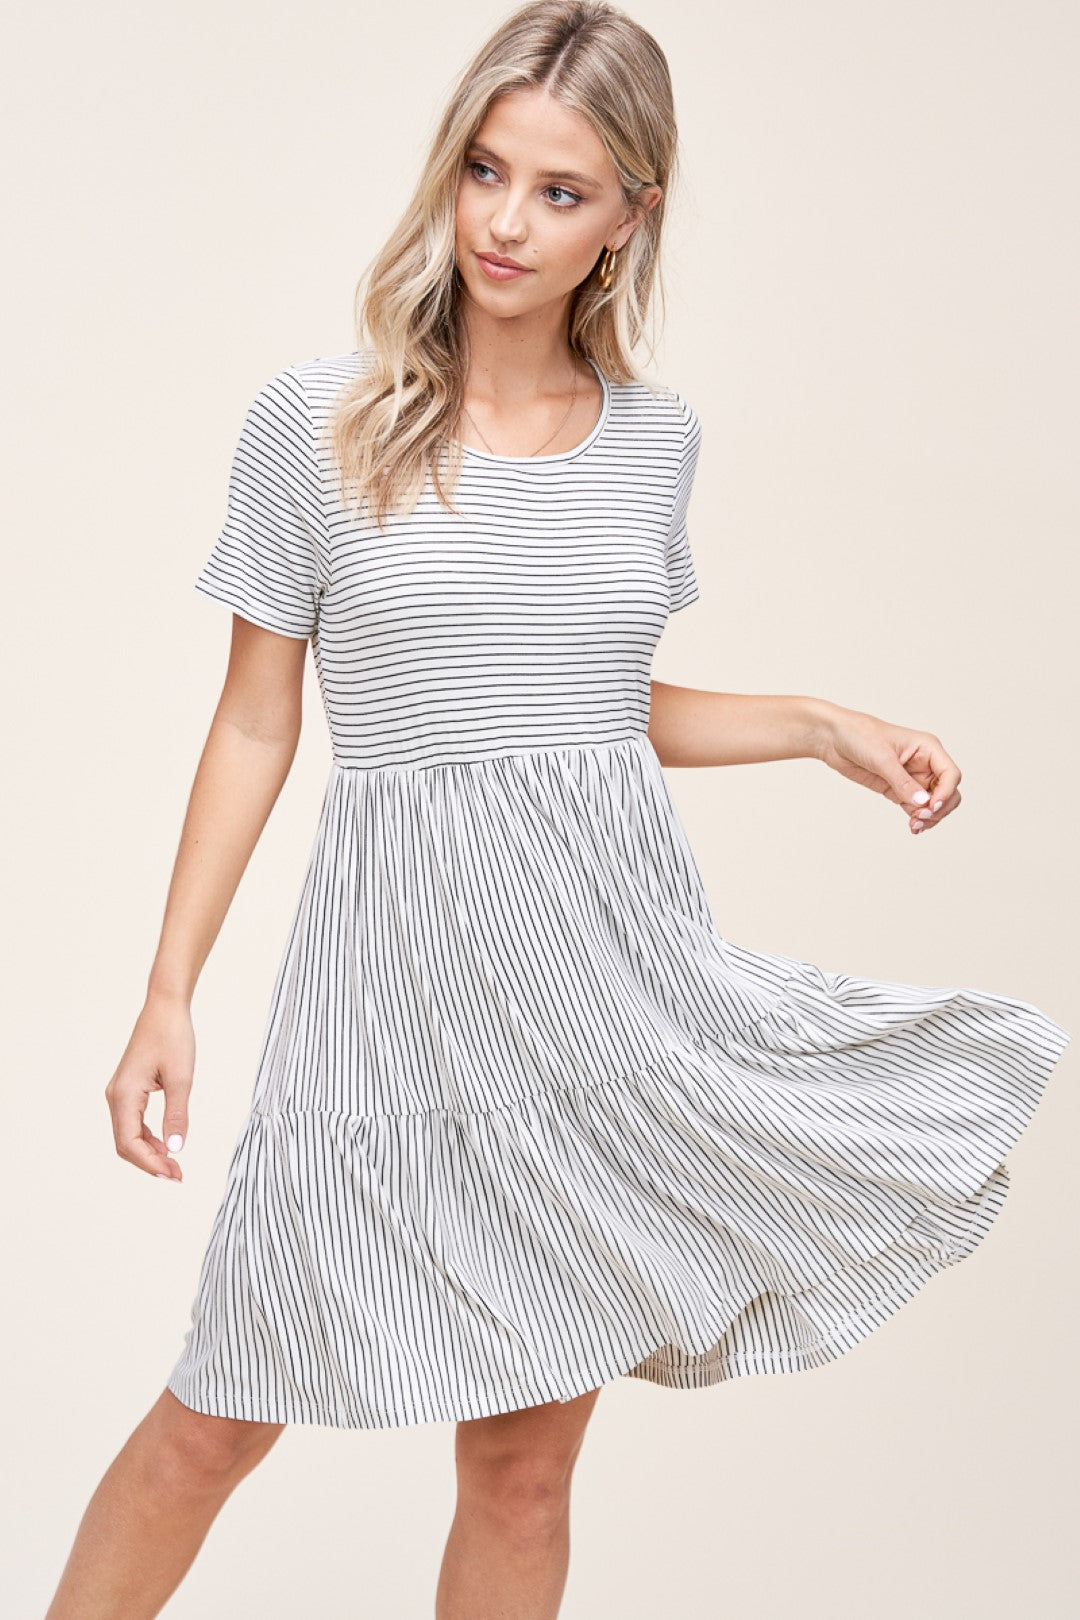 Ivory & Black Round Neck Short Sleeve Dress